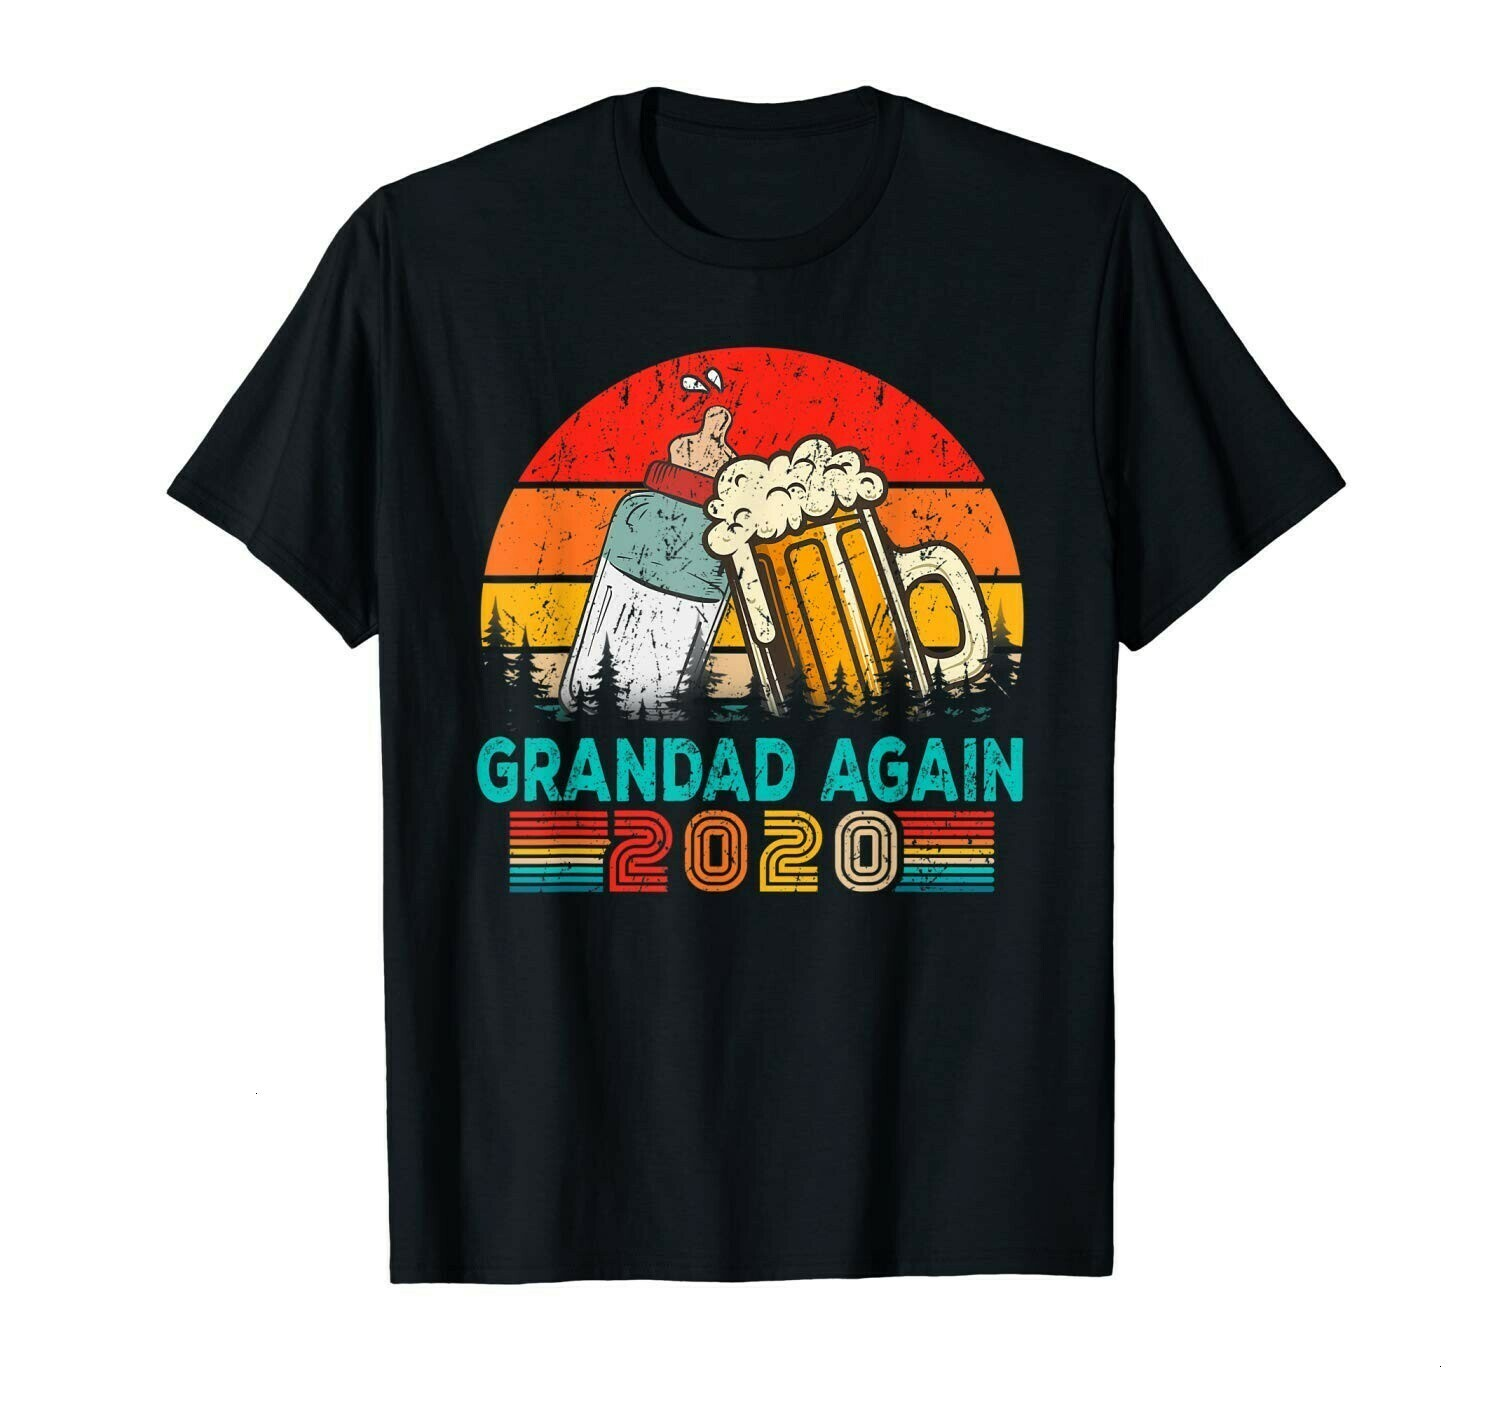 Vintage Grandad Again Est 2020 Costume Baby Shower Gift  Unisex T-Shirt Hoodie Sweatshirt Sweater Plus Size for Ladies Women Men Kids Youth Gifts Tee Jolly Family Gifts